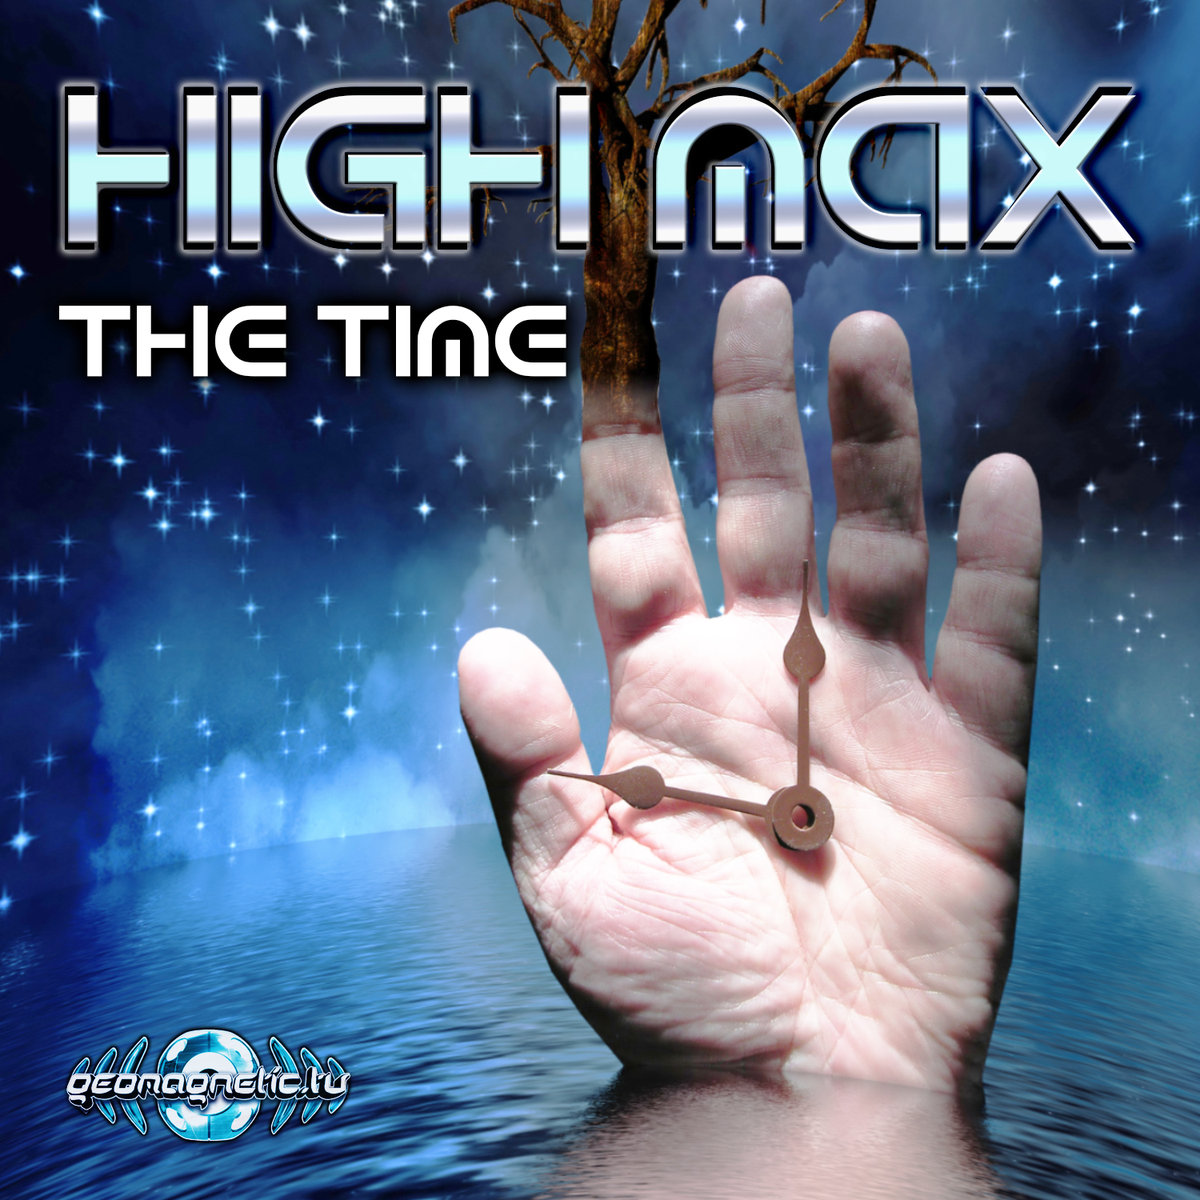 High Max - The Time @ 'The Time' album (electronic, high max)